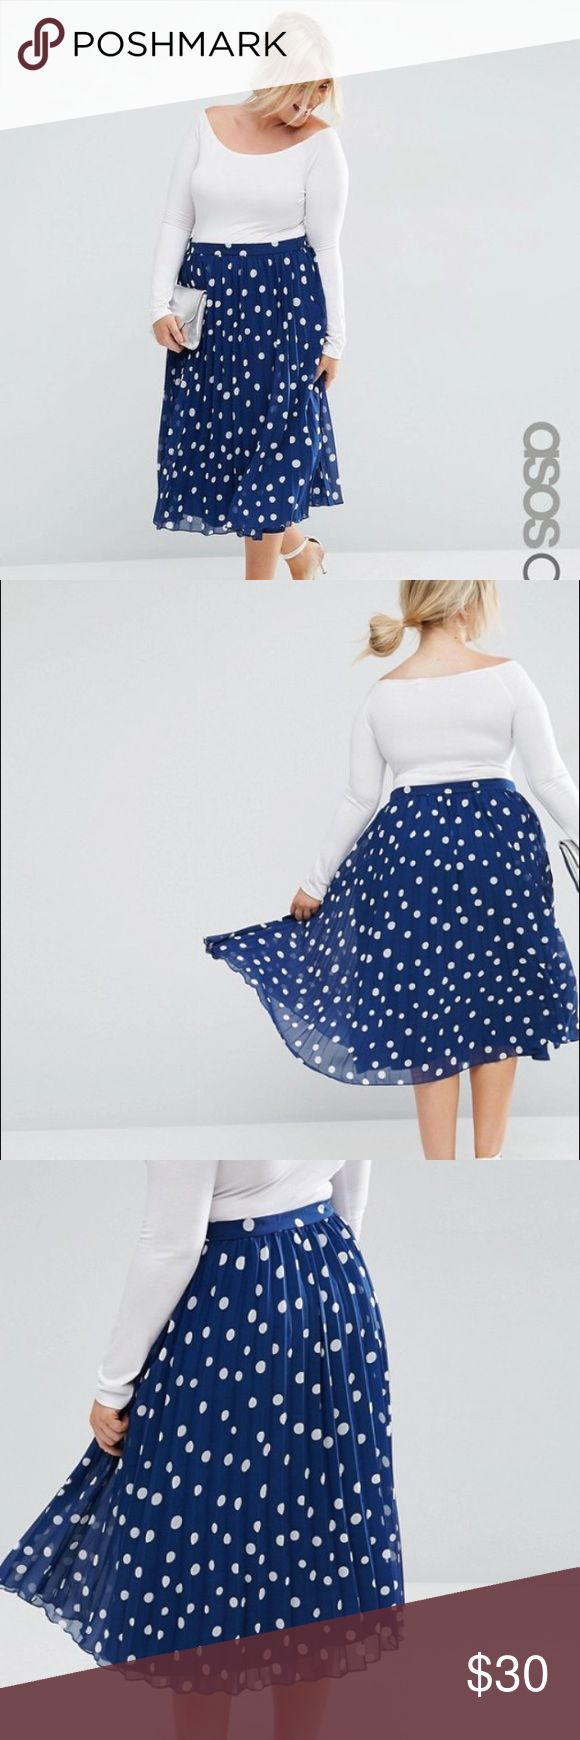 ASOS curve plus size navy pleated polka dot skirt New without tags. Zips on side ASOS Curve Skirts Midi